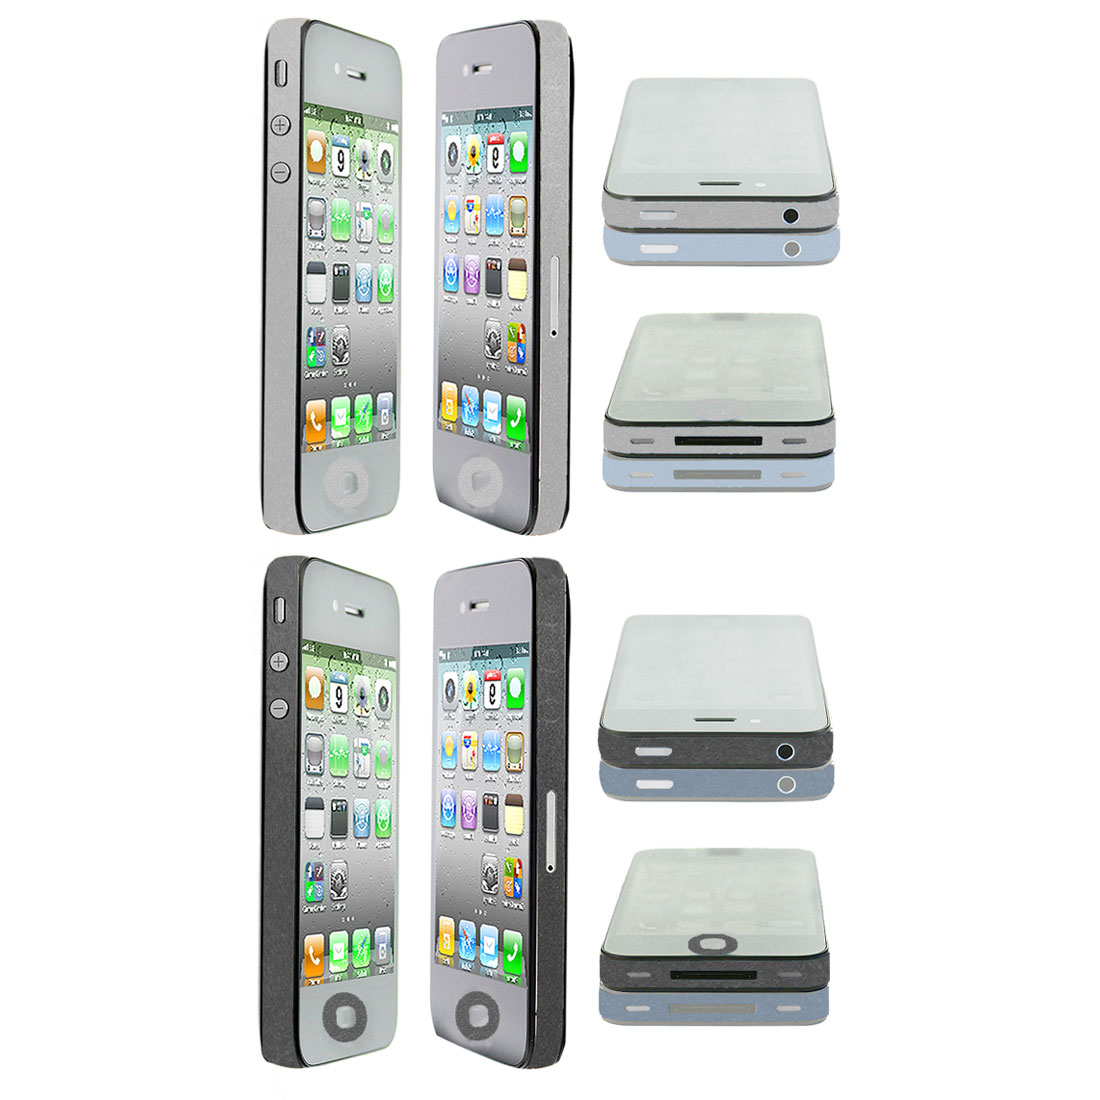 Glitter Silver Tone Black Edge Wrap Decal Sticker 2 Pcs for iPhone 4 4G 4S 4GS